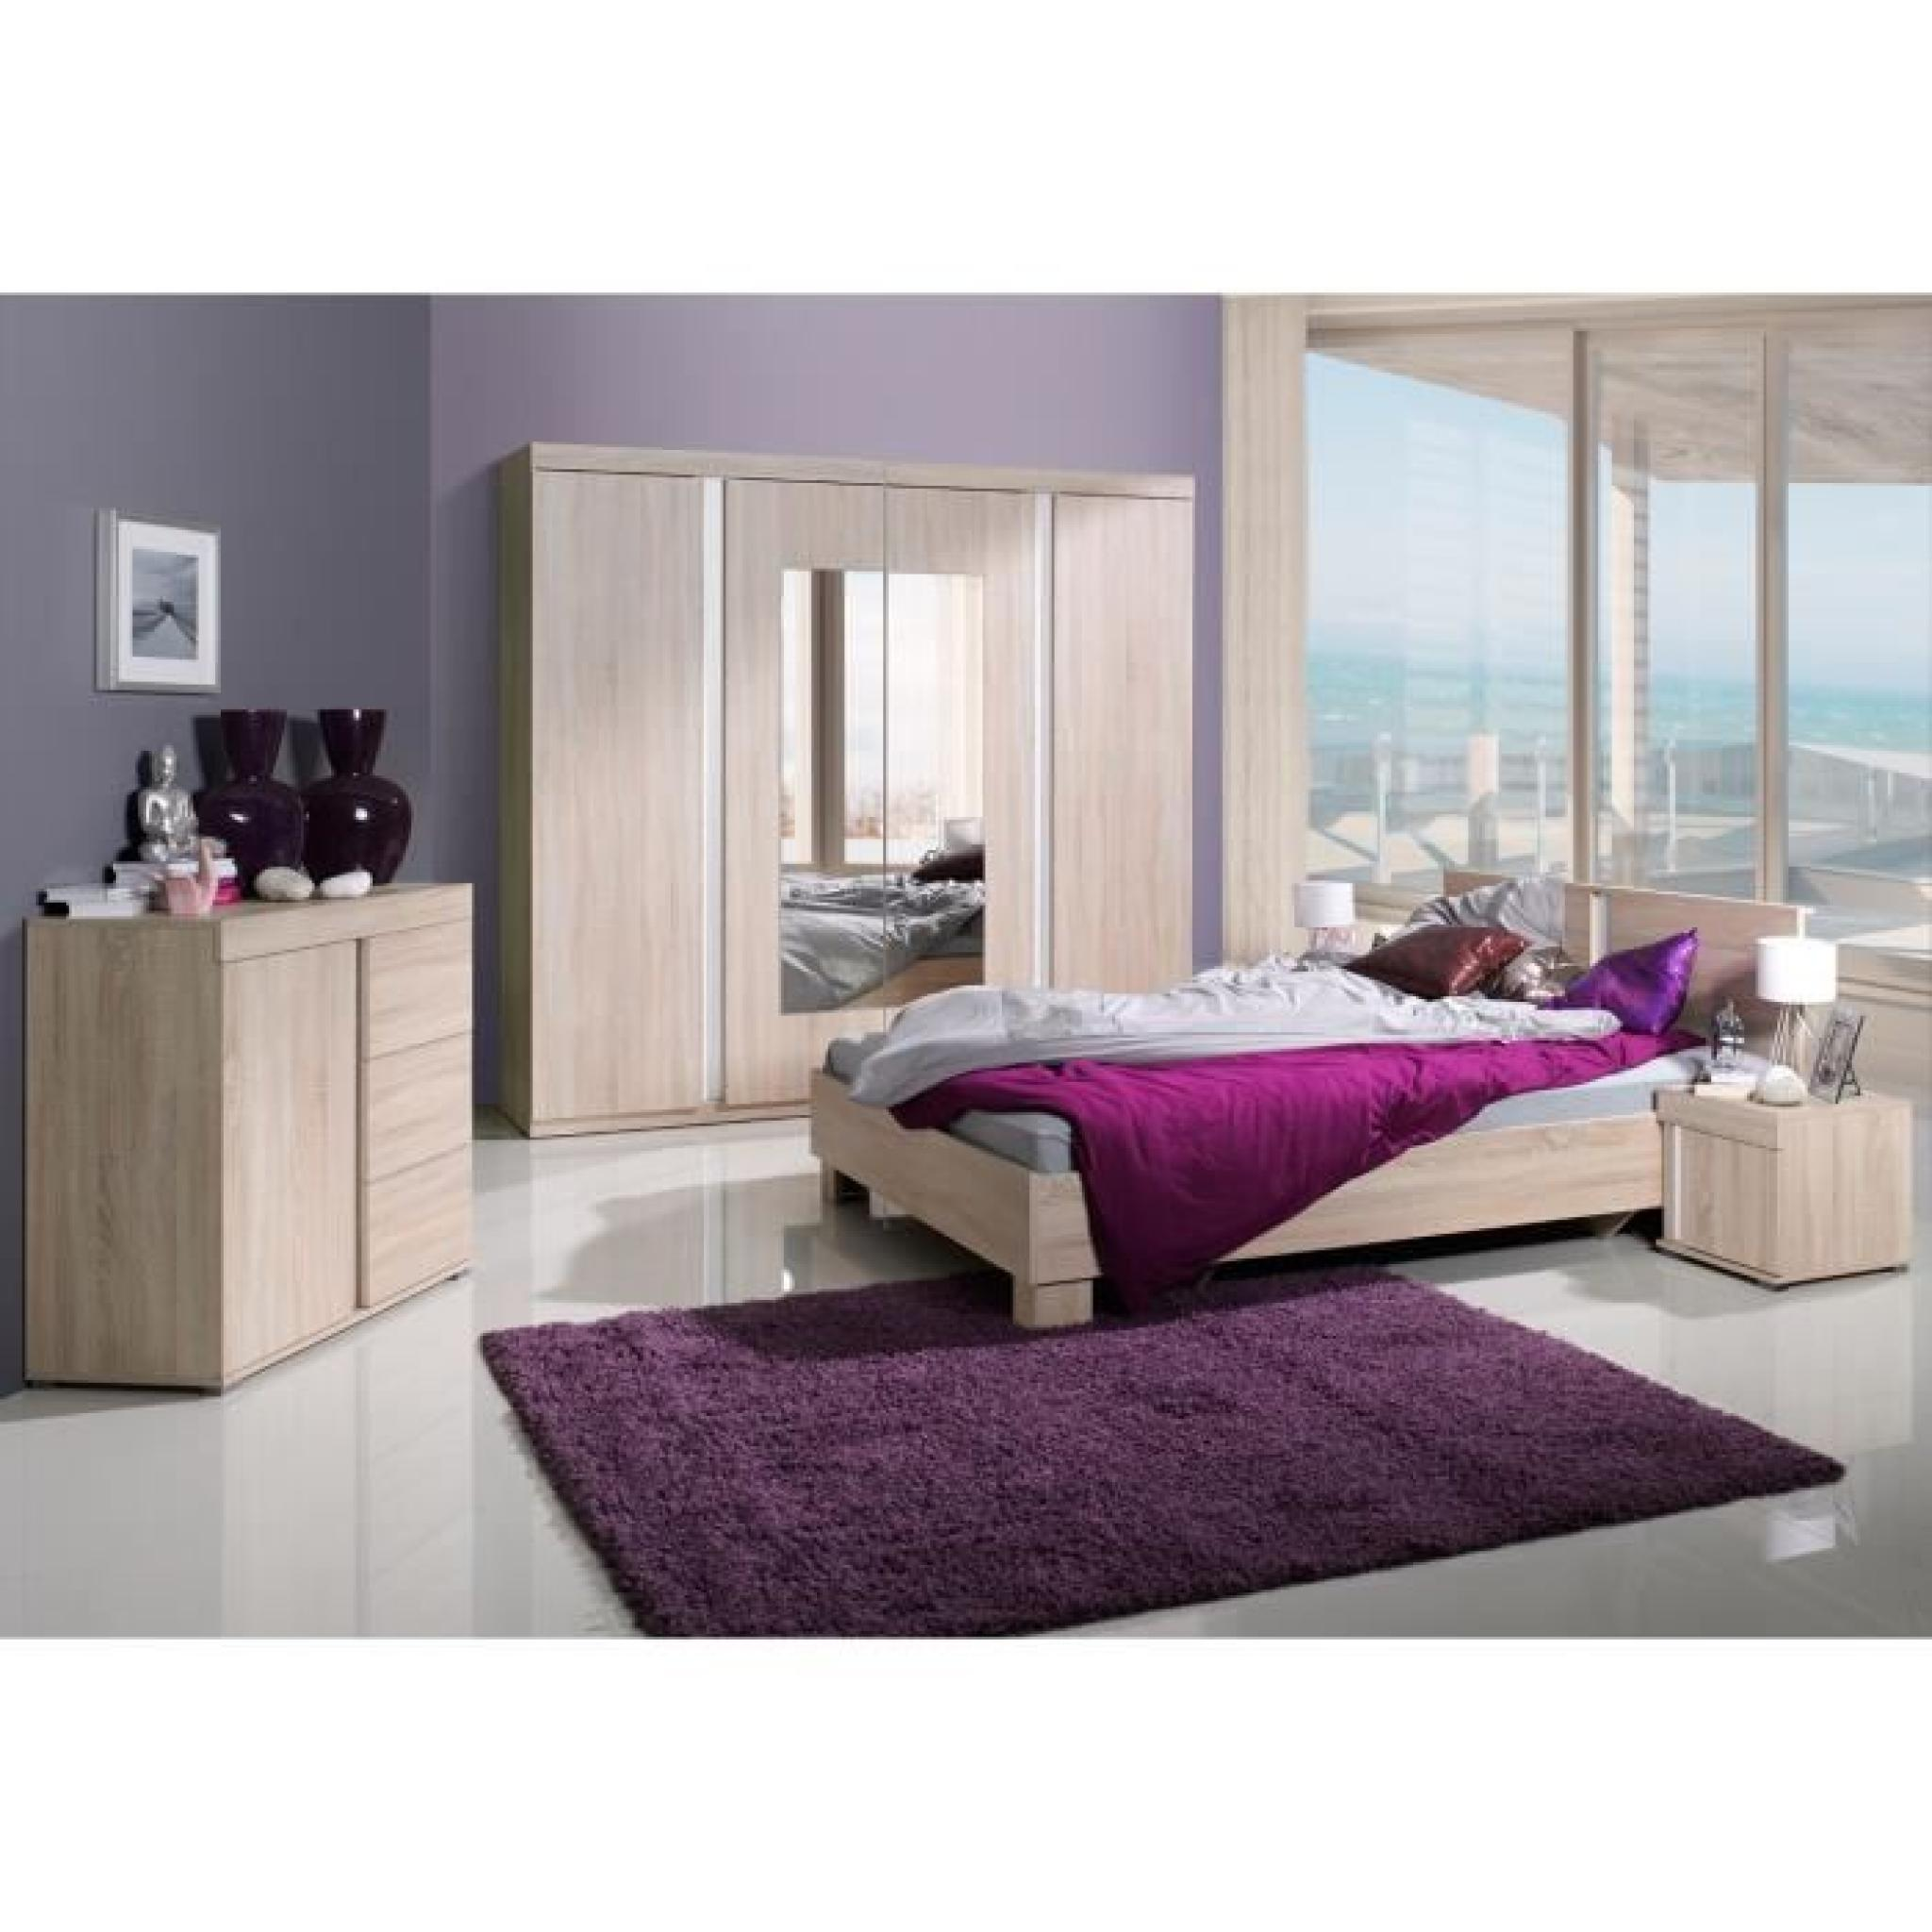 chambre coucher compl te adulte avignon lit armoire. Black Bedroom Furniture Sets. Home Design Ideas